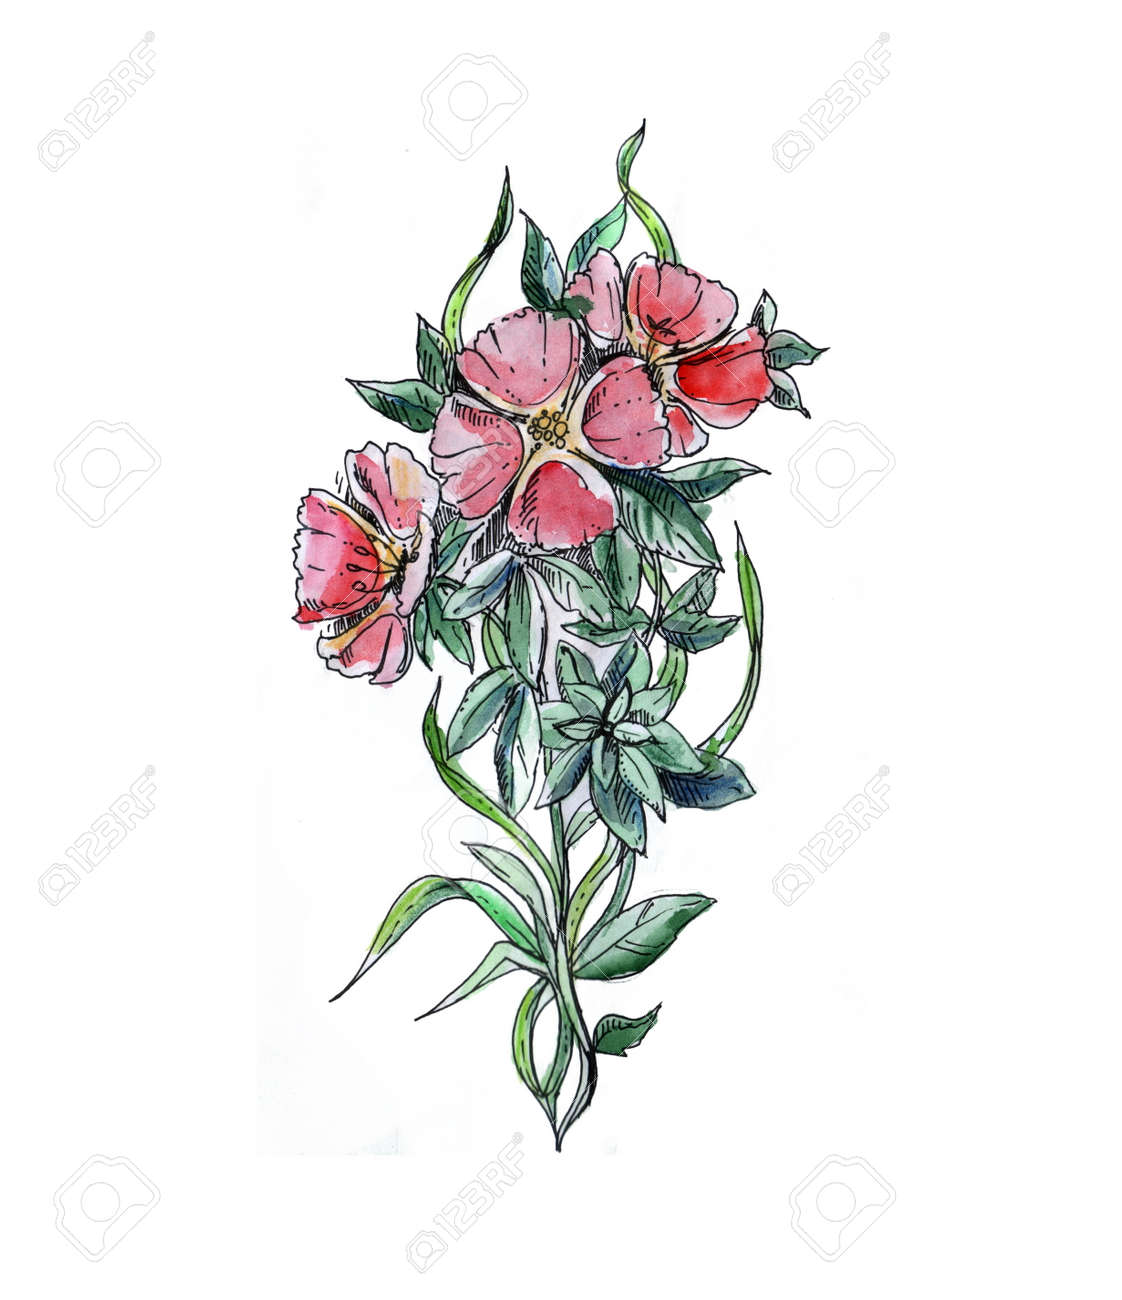 Red Hand Drawn Watercolor Floral Ornament With Godetia Flower Stock Photo Picture And Royalty Free Image Image 67294438